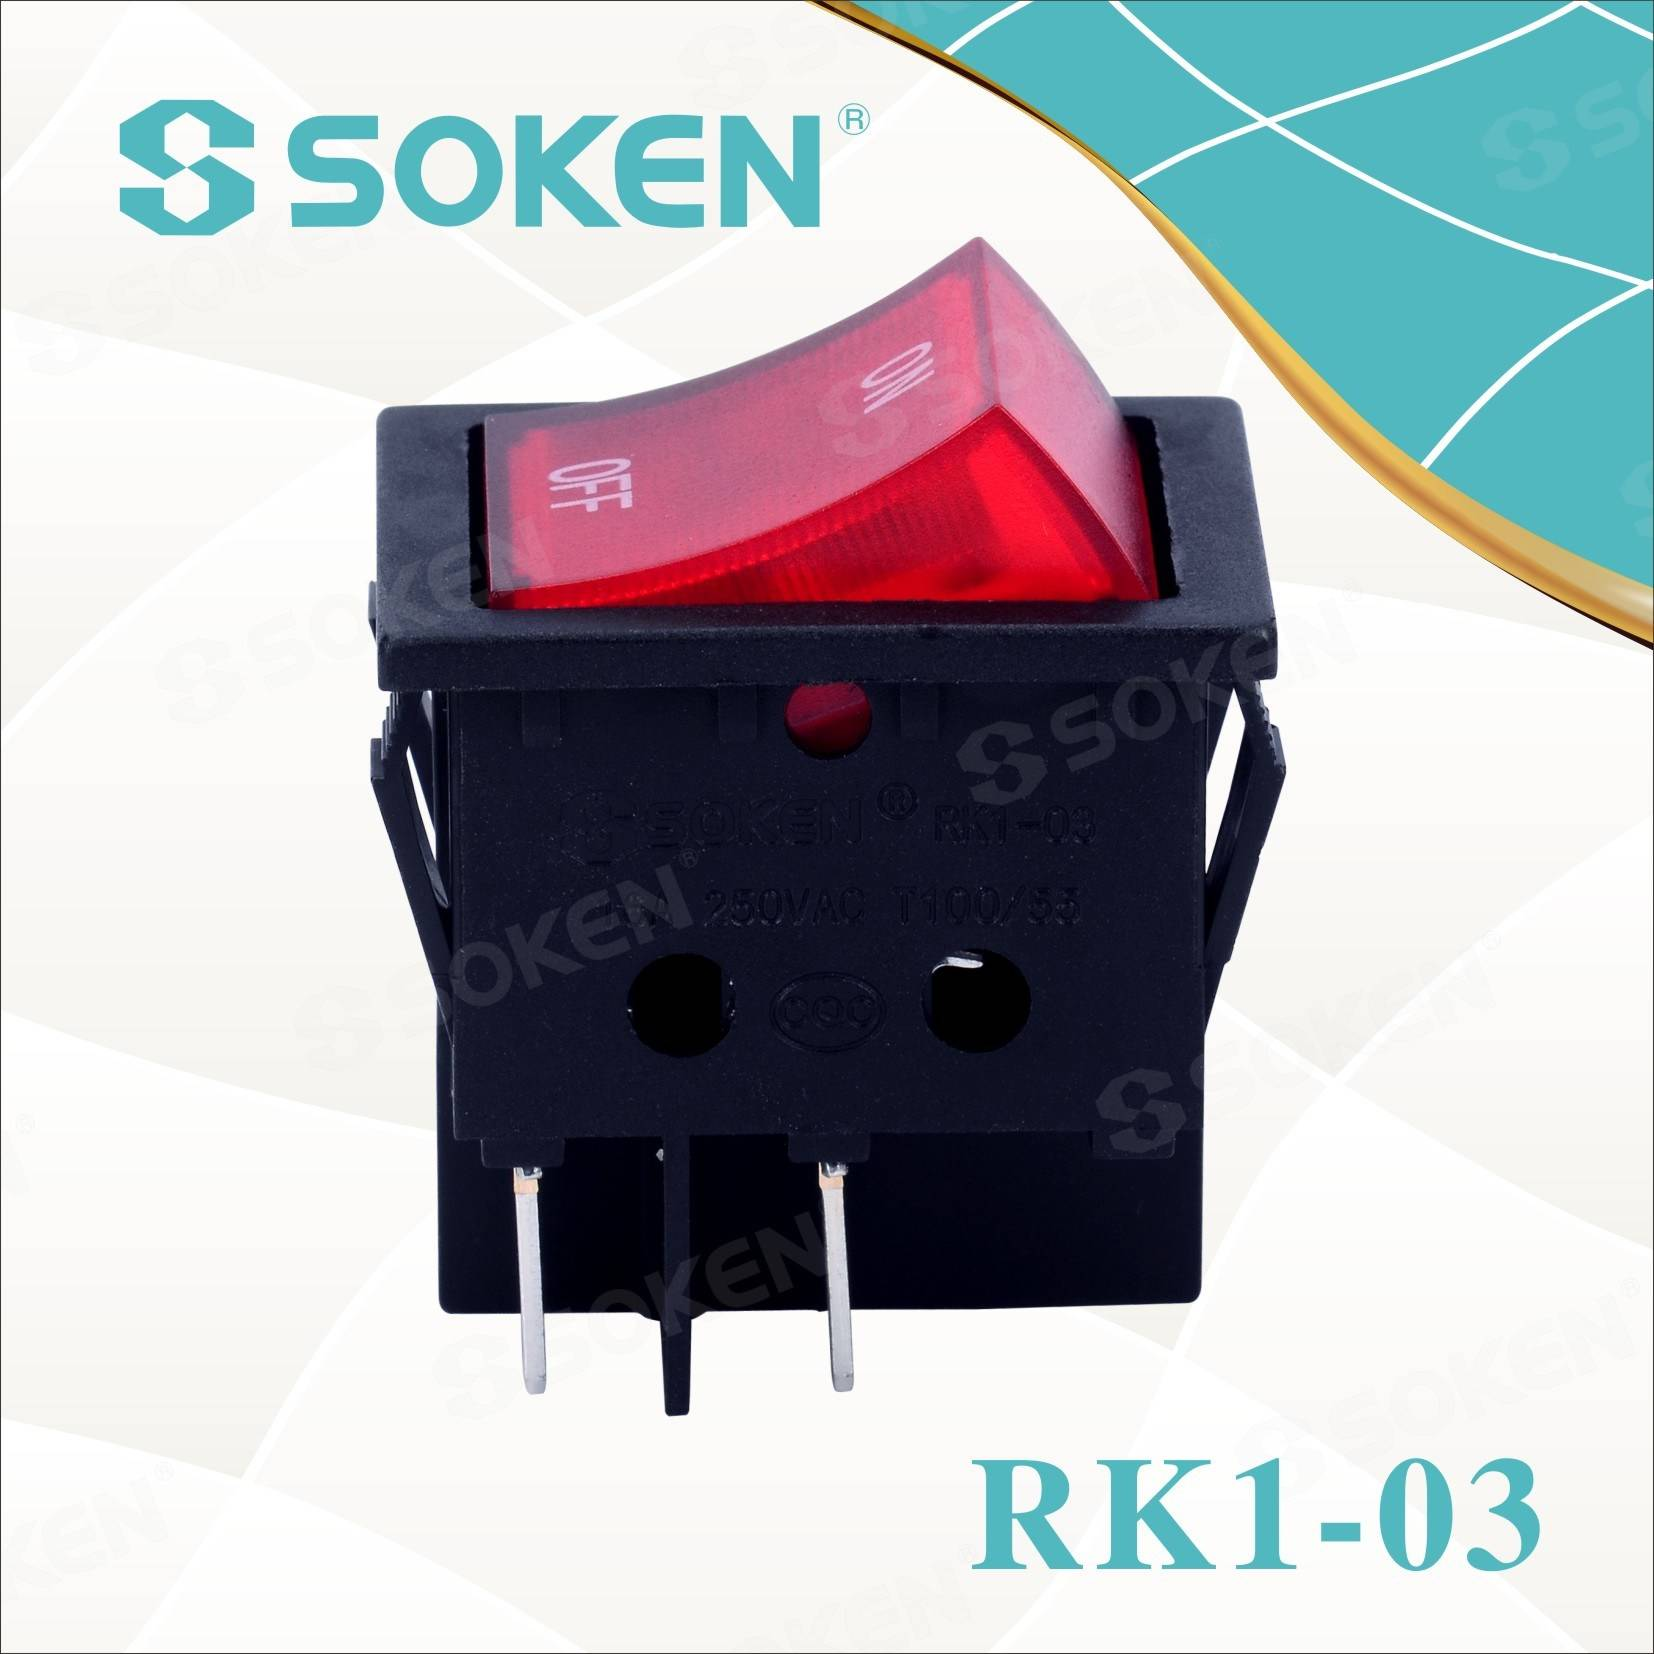 Discountable price lock Type Switch For Blender -